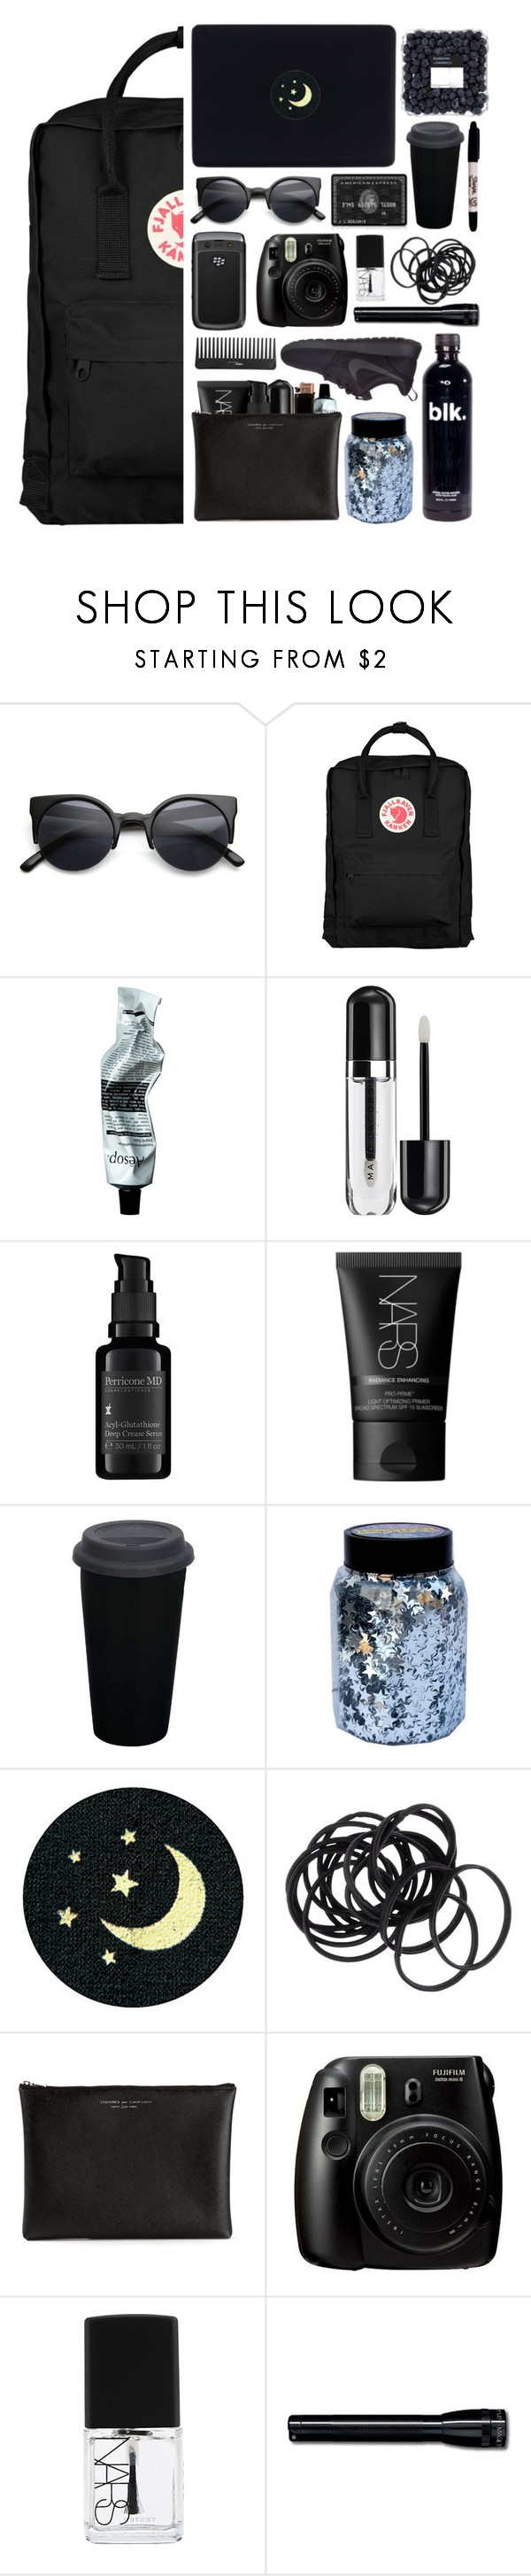 """""""My backpack is my universe"""" by claripadula ❤ liked on Polyvore featuring Retrò, Fjällräven, Aesop, GAS Jeans, Marc Jacobs, Perricone MD, NARS Cosmetics, Sharpie, CO and Karta"""